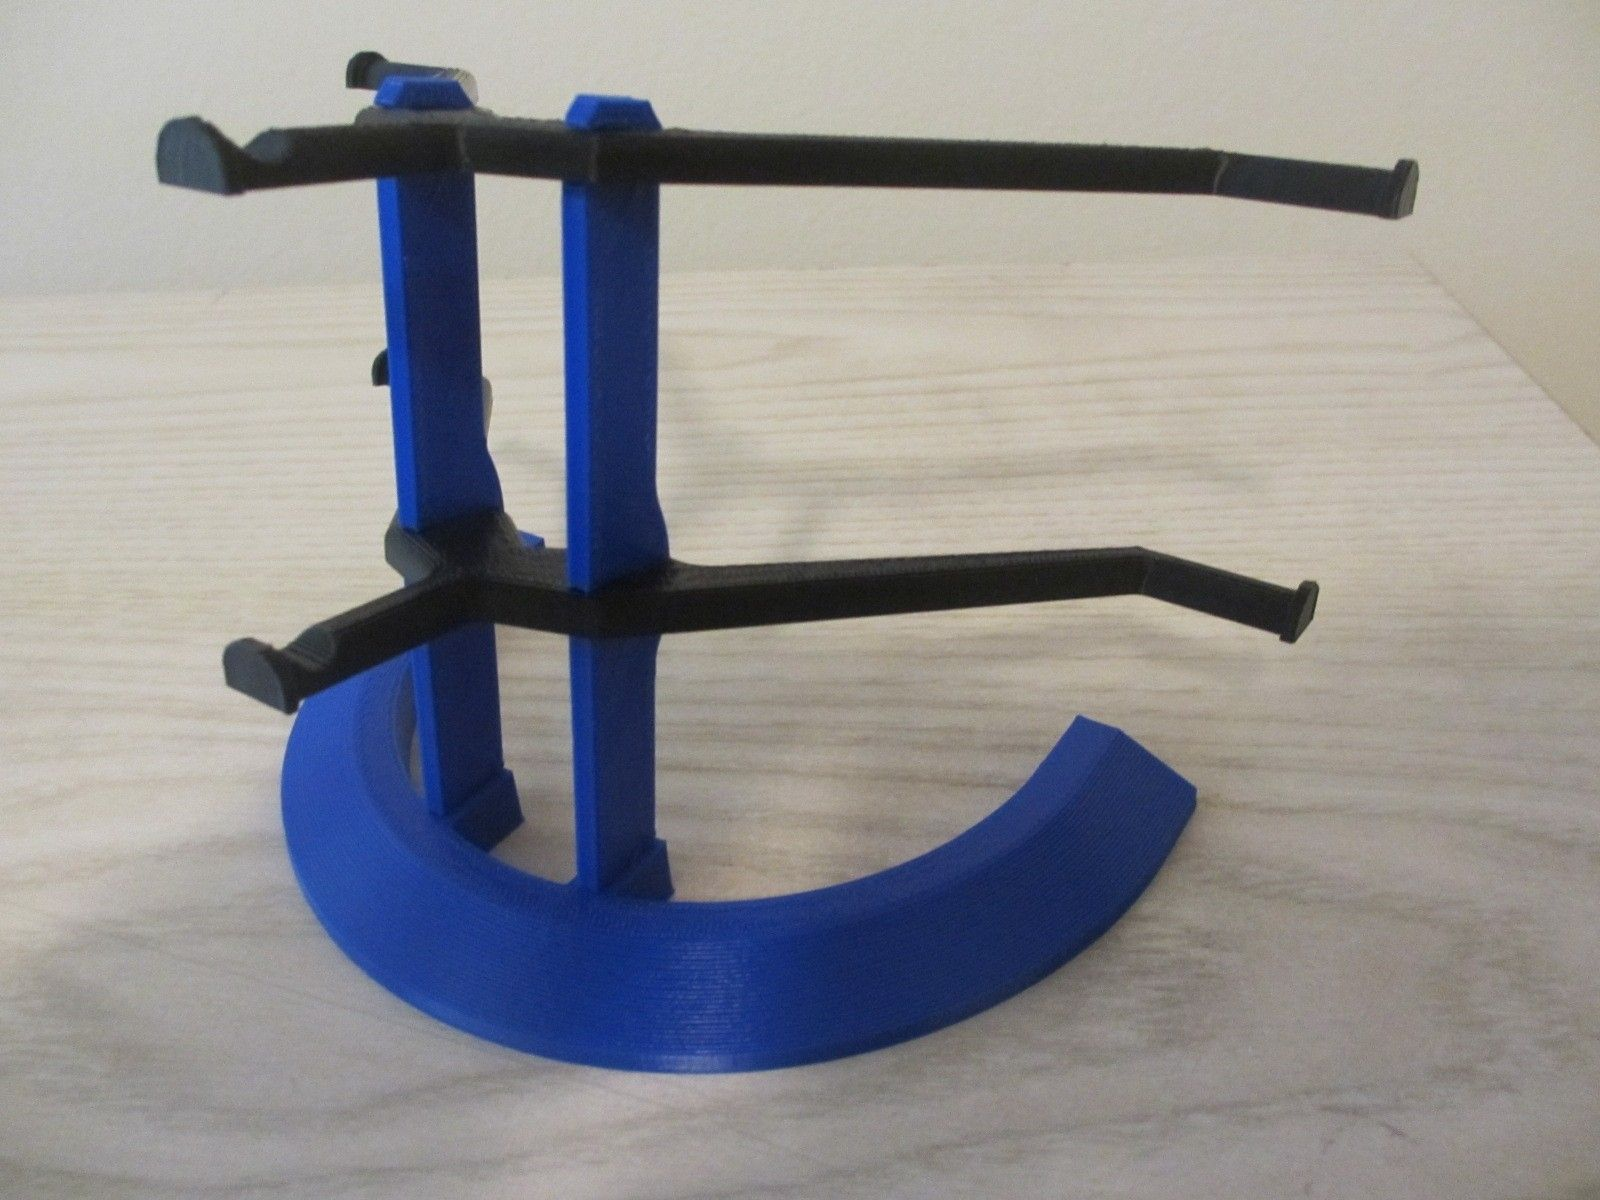 The Blue 3D Printed Display Stand - 001.JPG